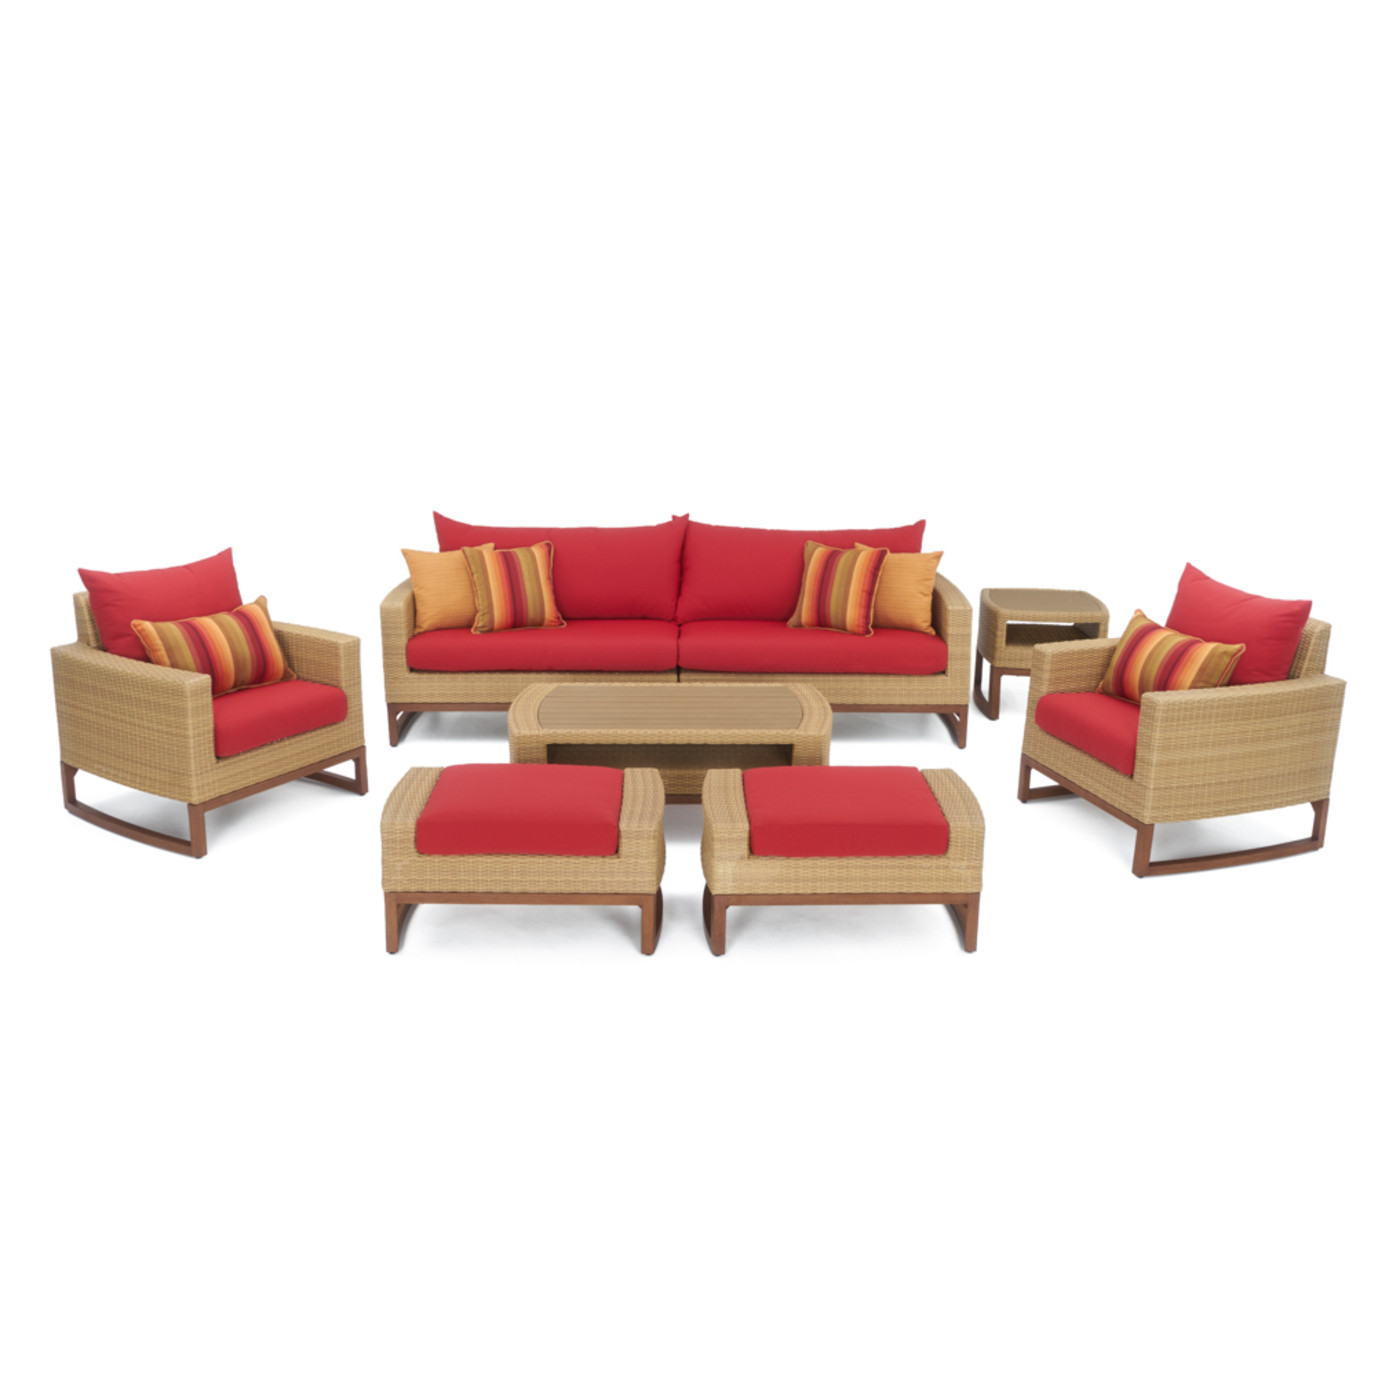 Milea™ 8pc Deep Seating Set - Sunset Red